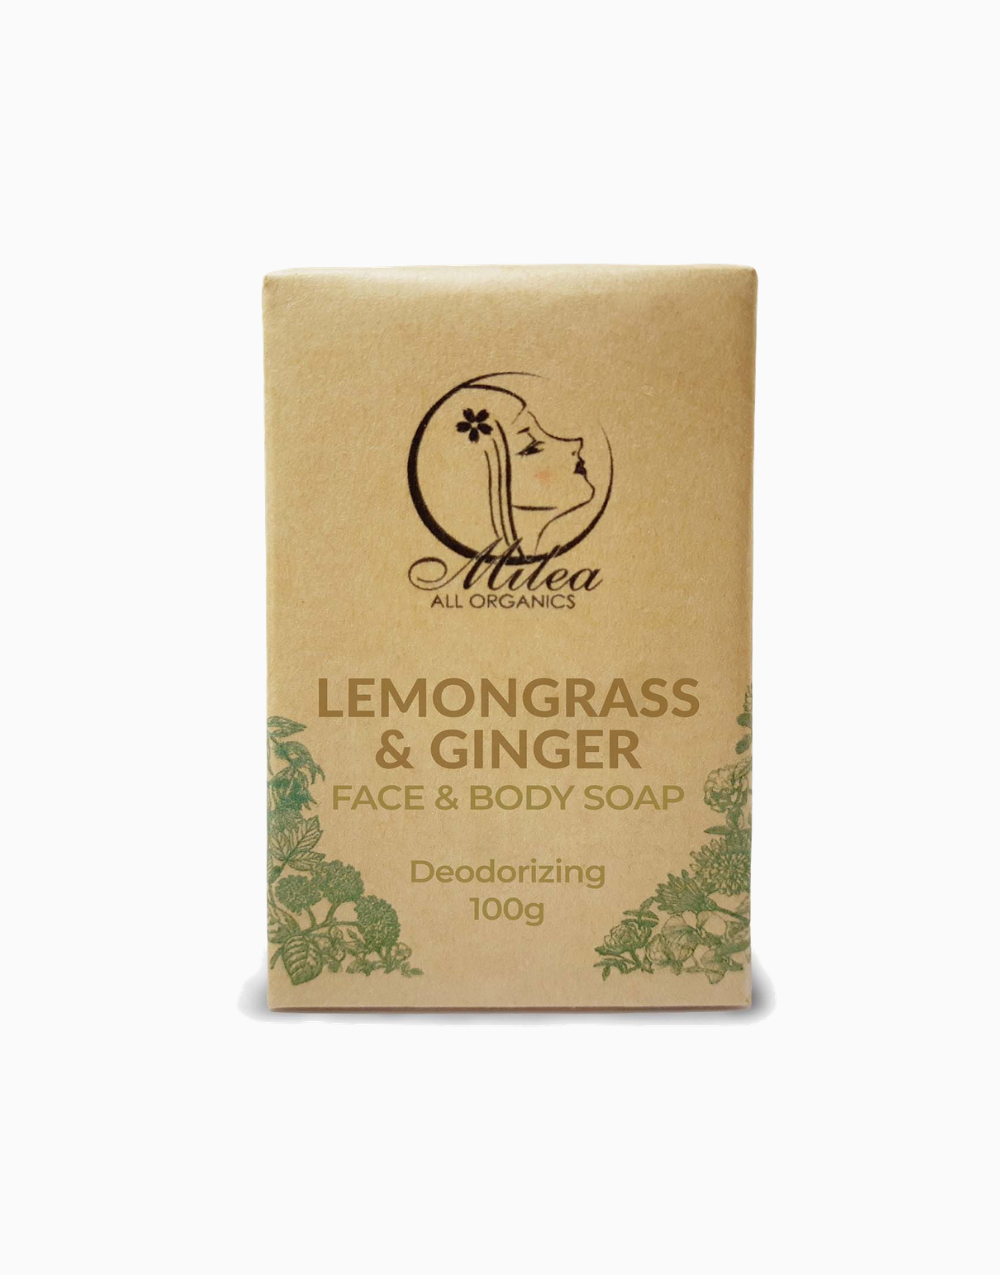 Lemongrass & Ginger Soap (100g) by Milea